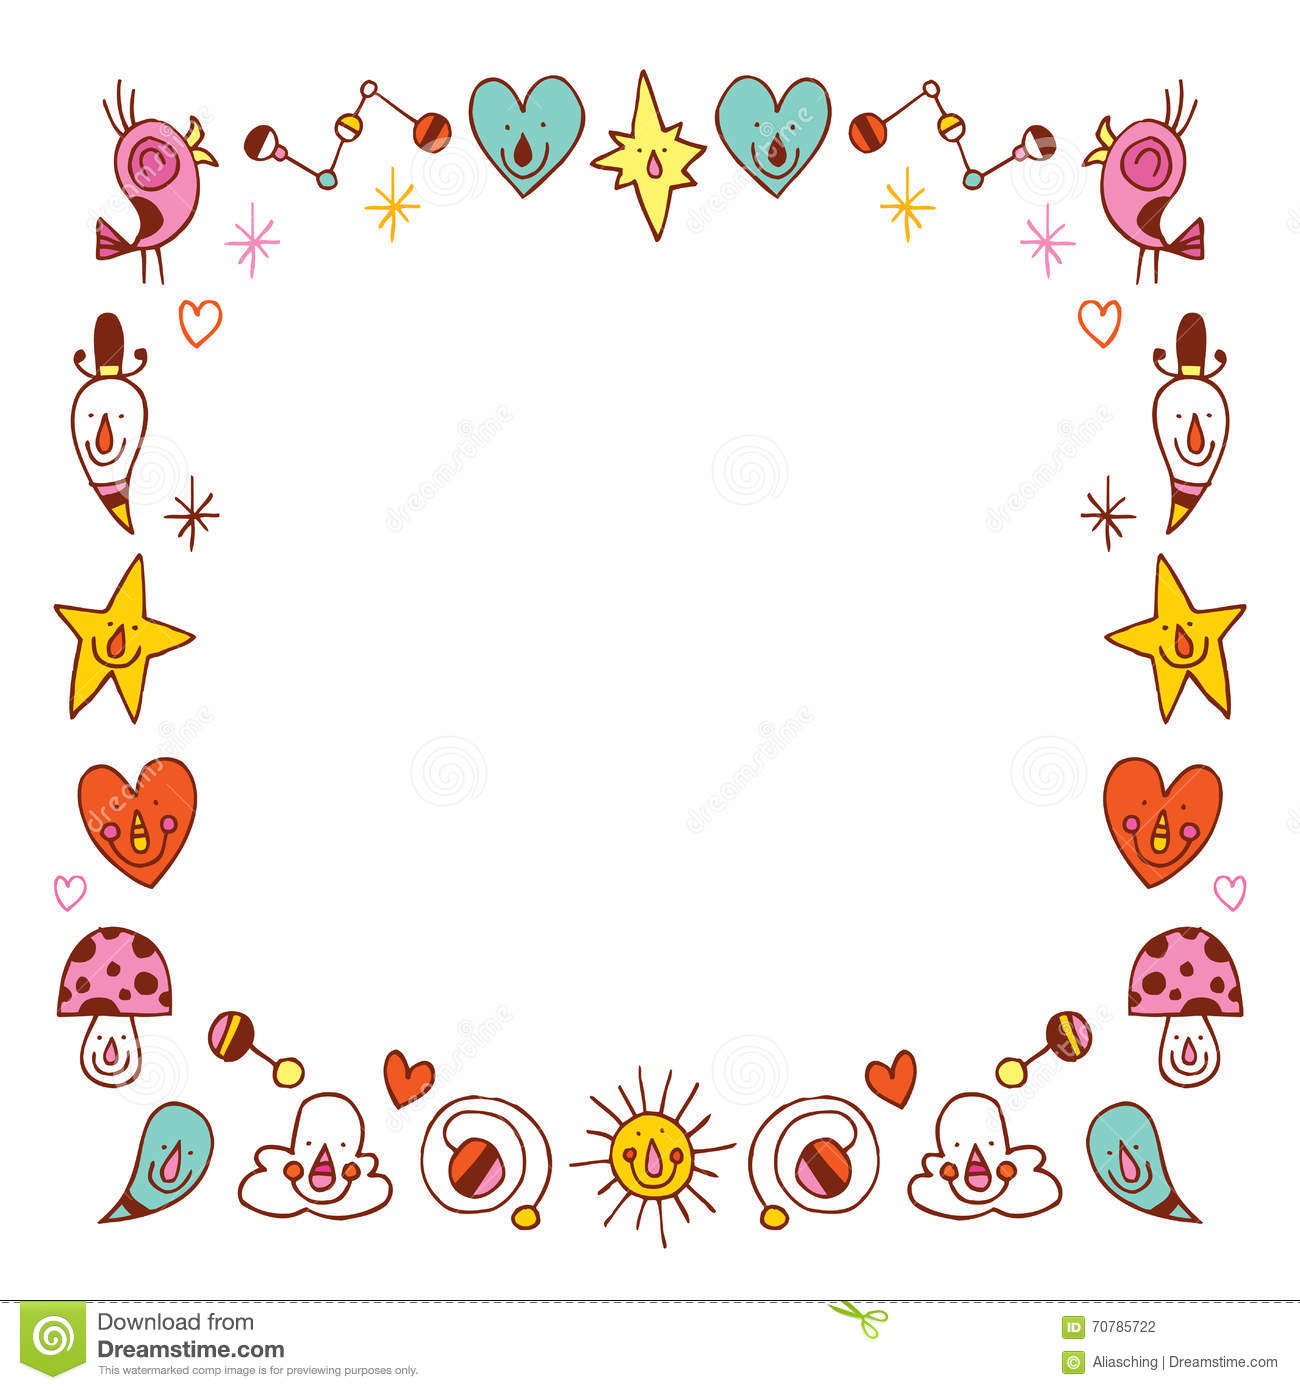 Border Design Disney Character : Cartoon characters border frame vector illustration